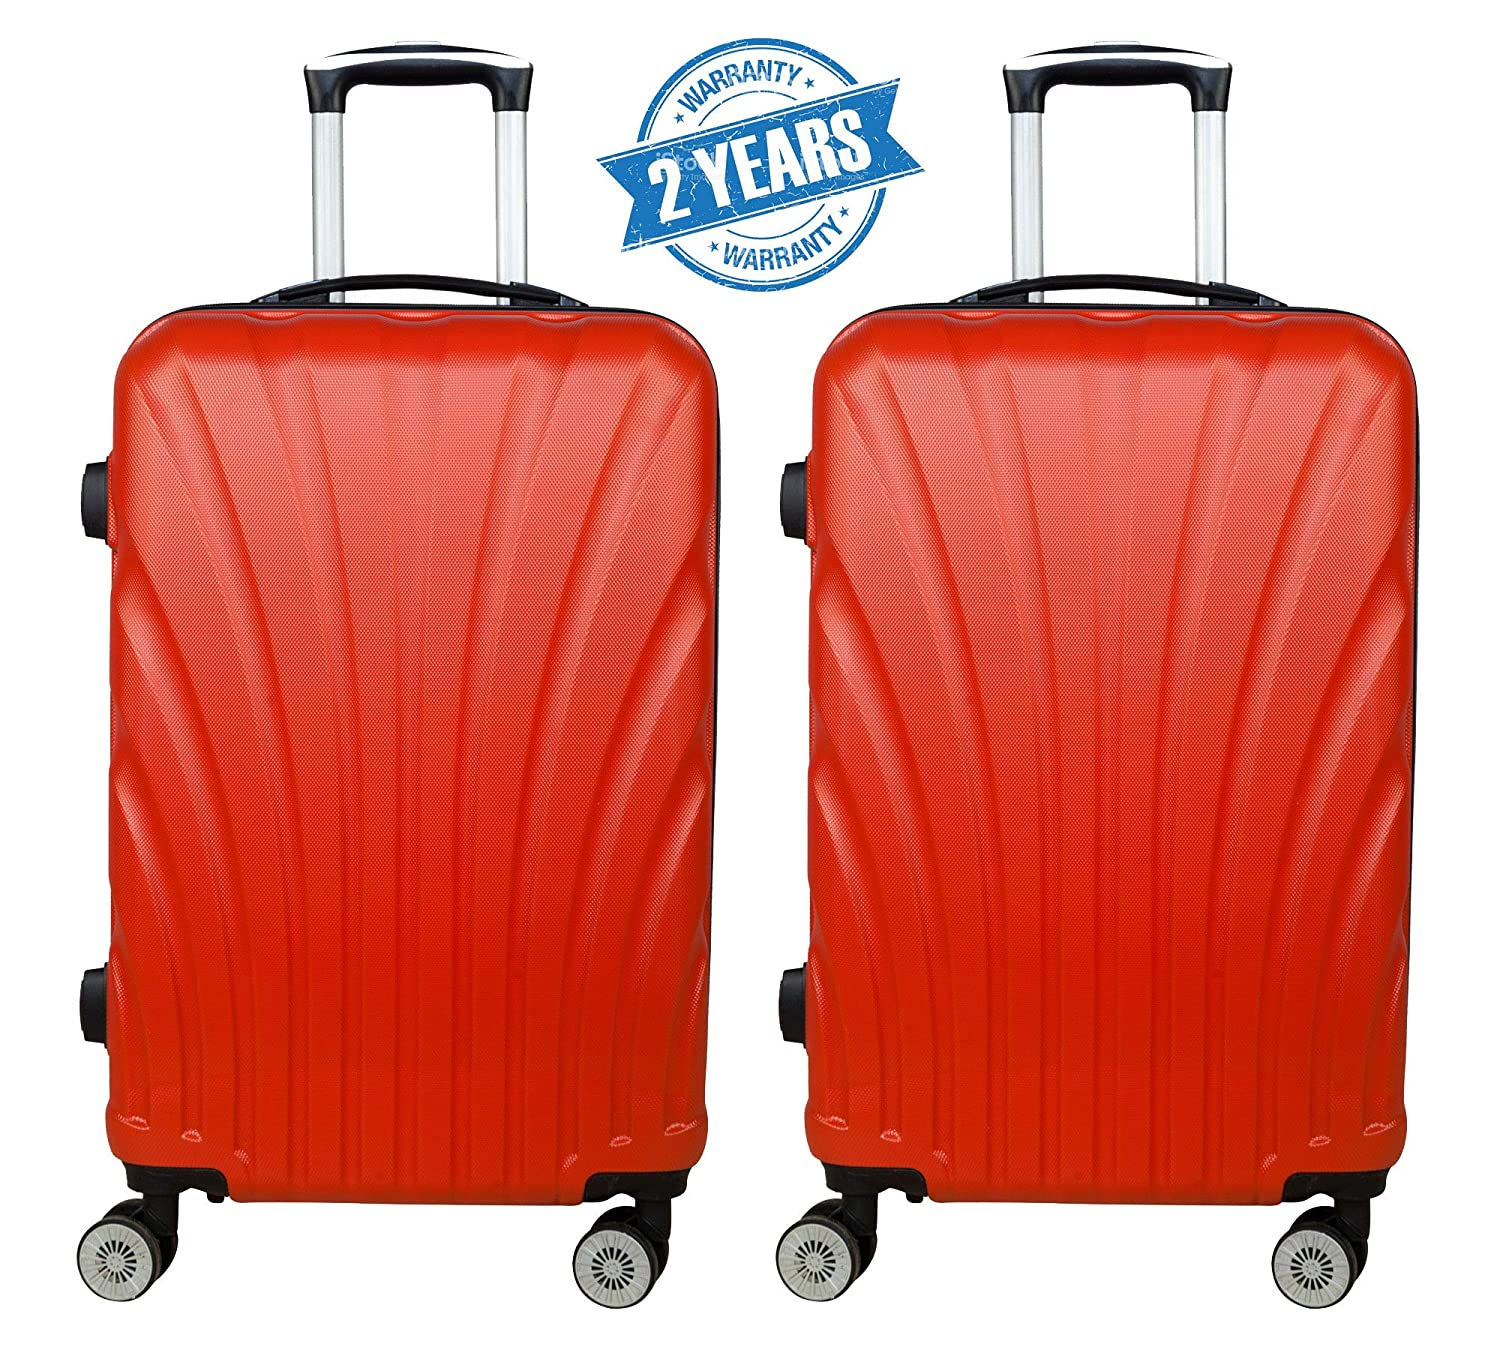 c4d5d7290 3G Combat Series 8016 ABS Set of 2 55cms/20inch Hard Sided Luggag Trolley Suitcase  Cabin Size Suitcase: Amazon.in: Bags, Wallets & Luggage